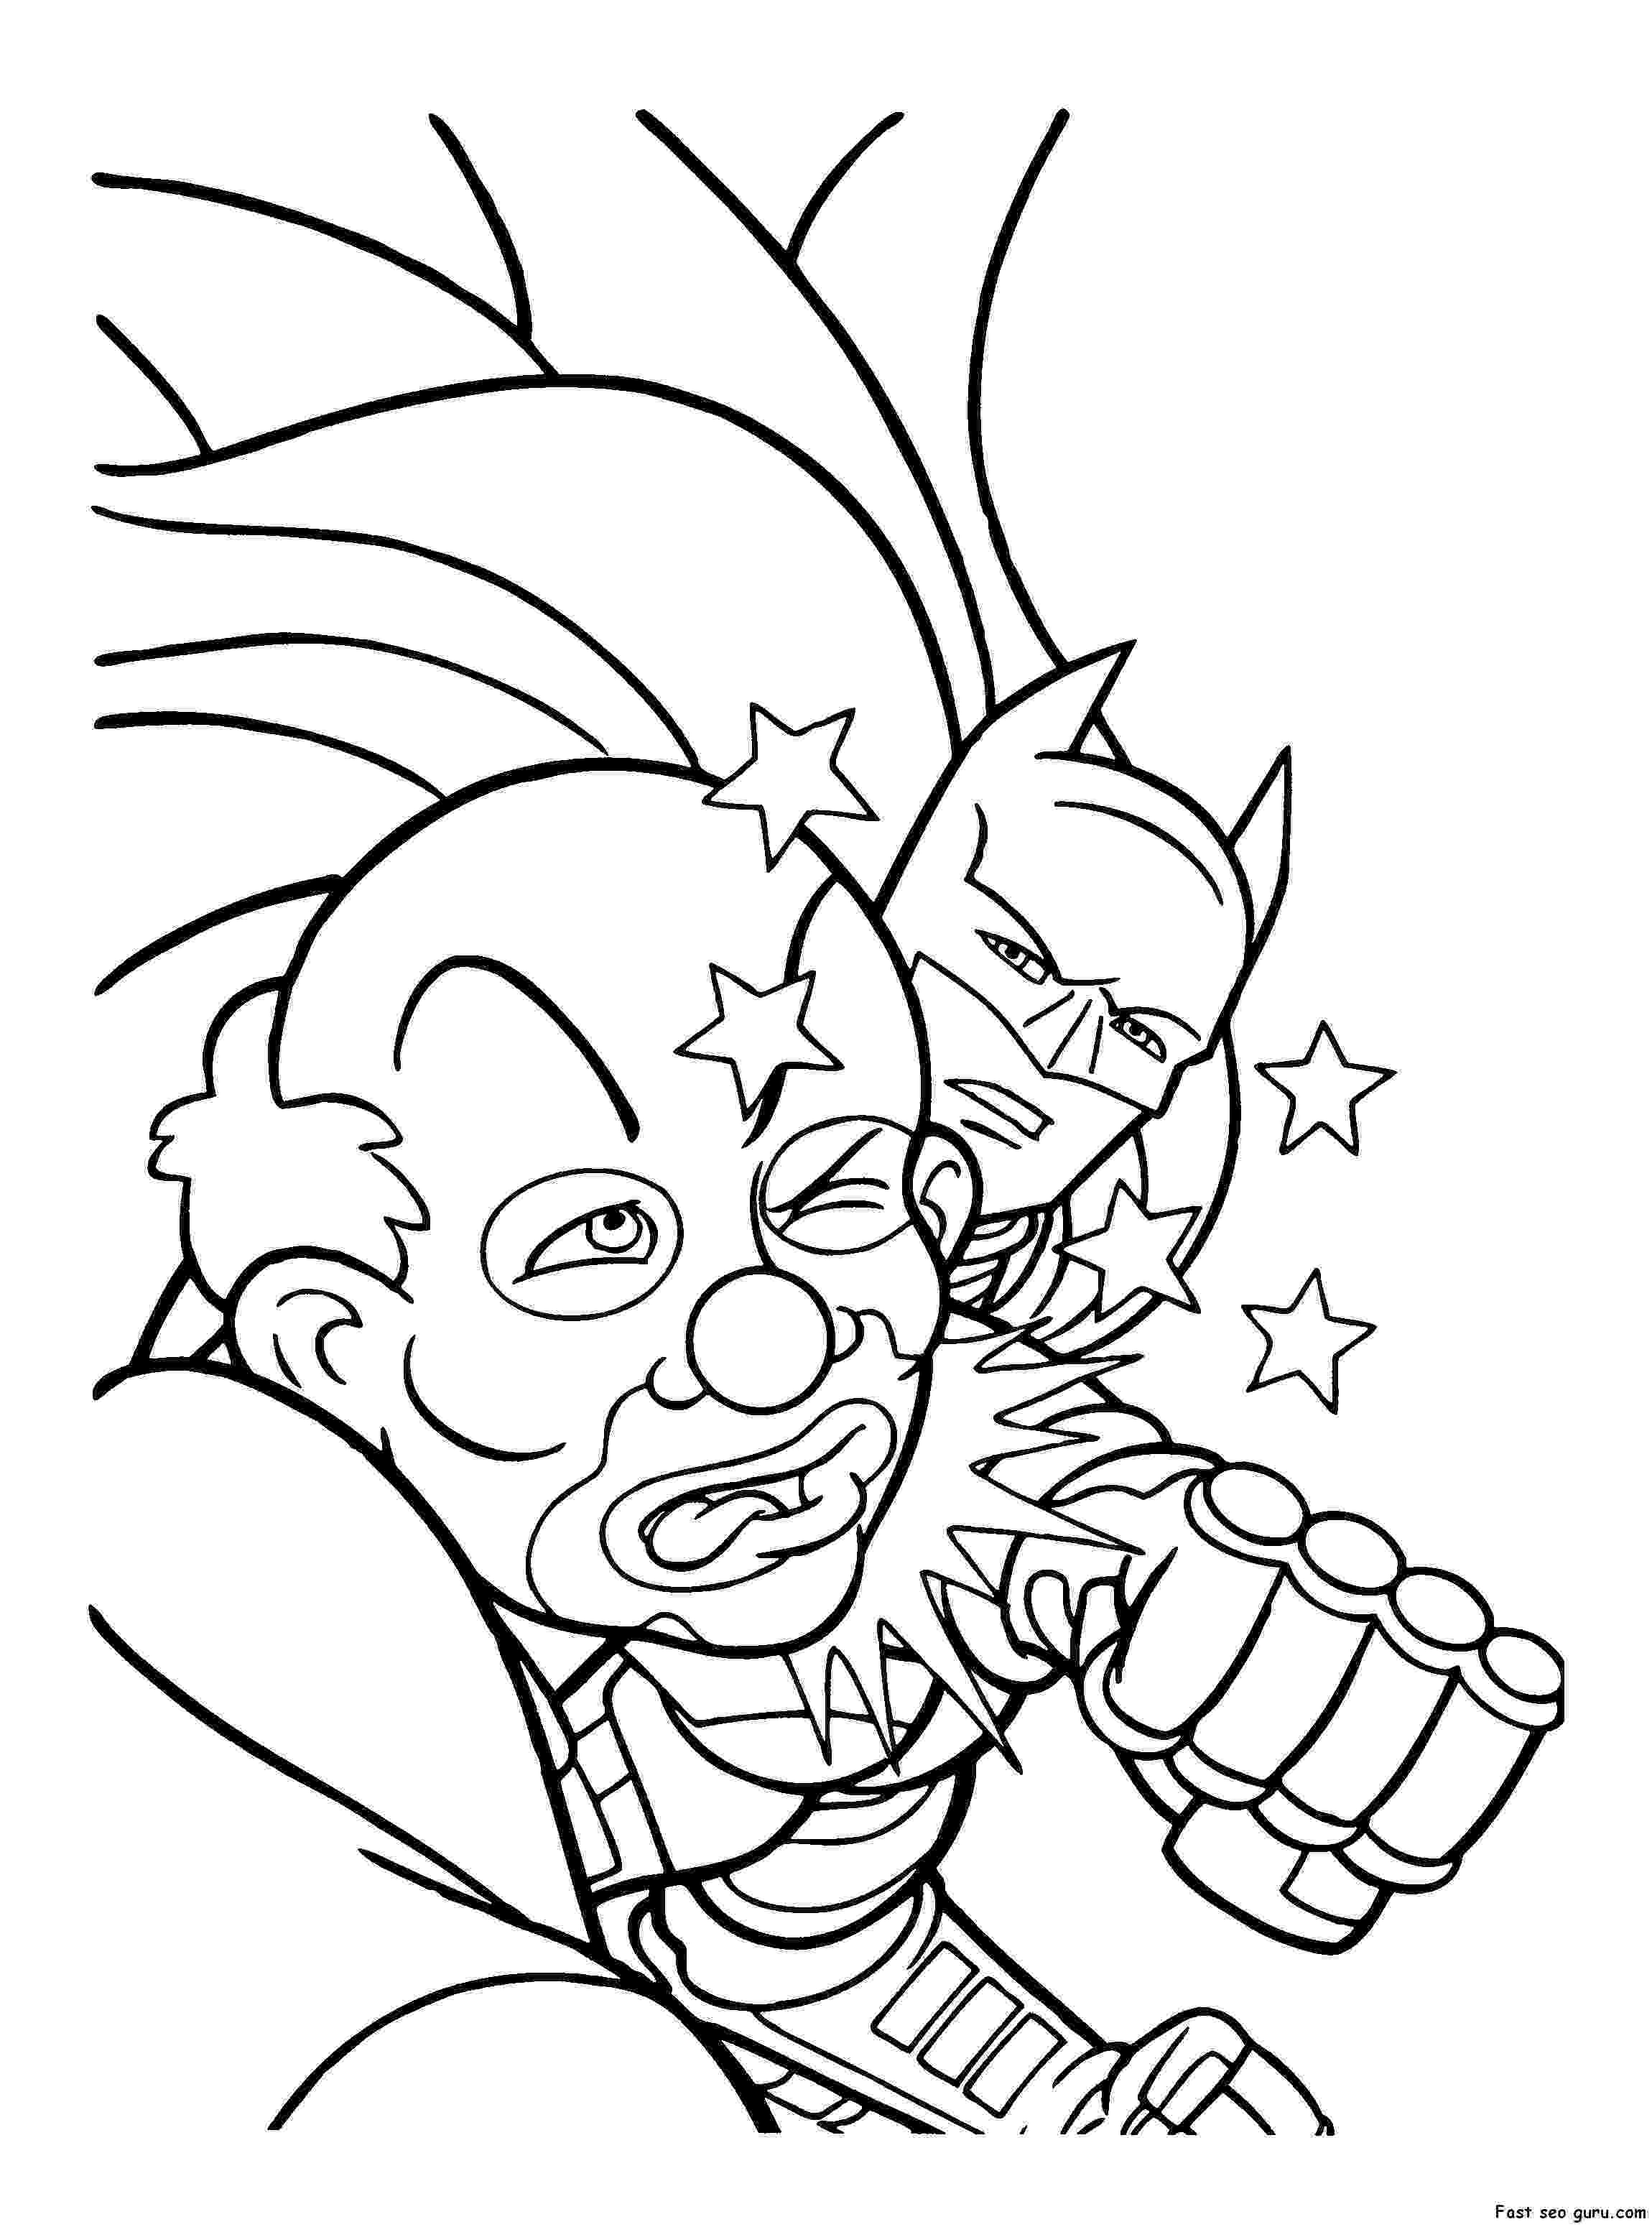 joker coloring pages printable joker coloring pages best coloring pages for kids coloring joker pages printable